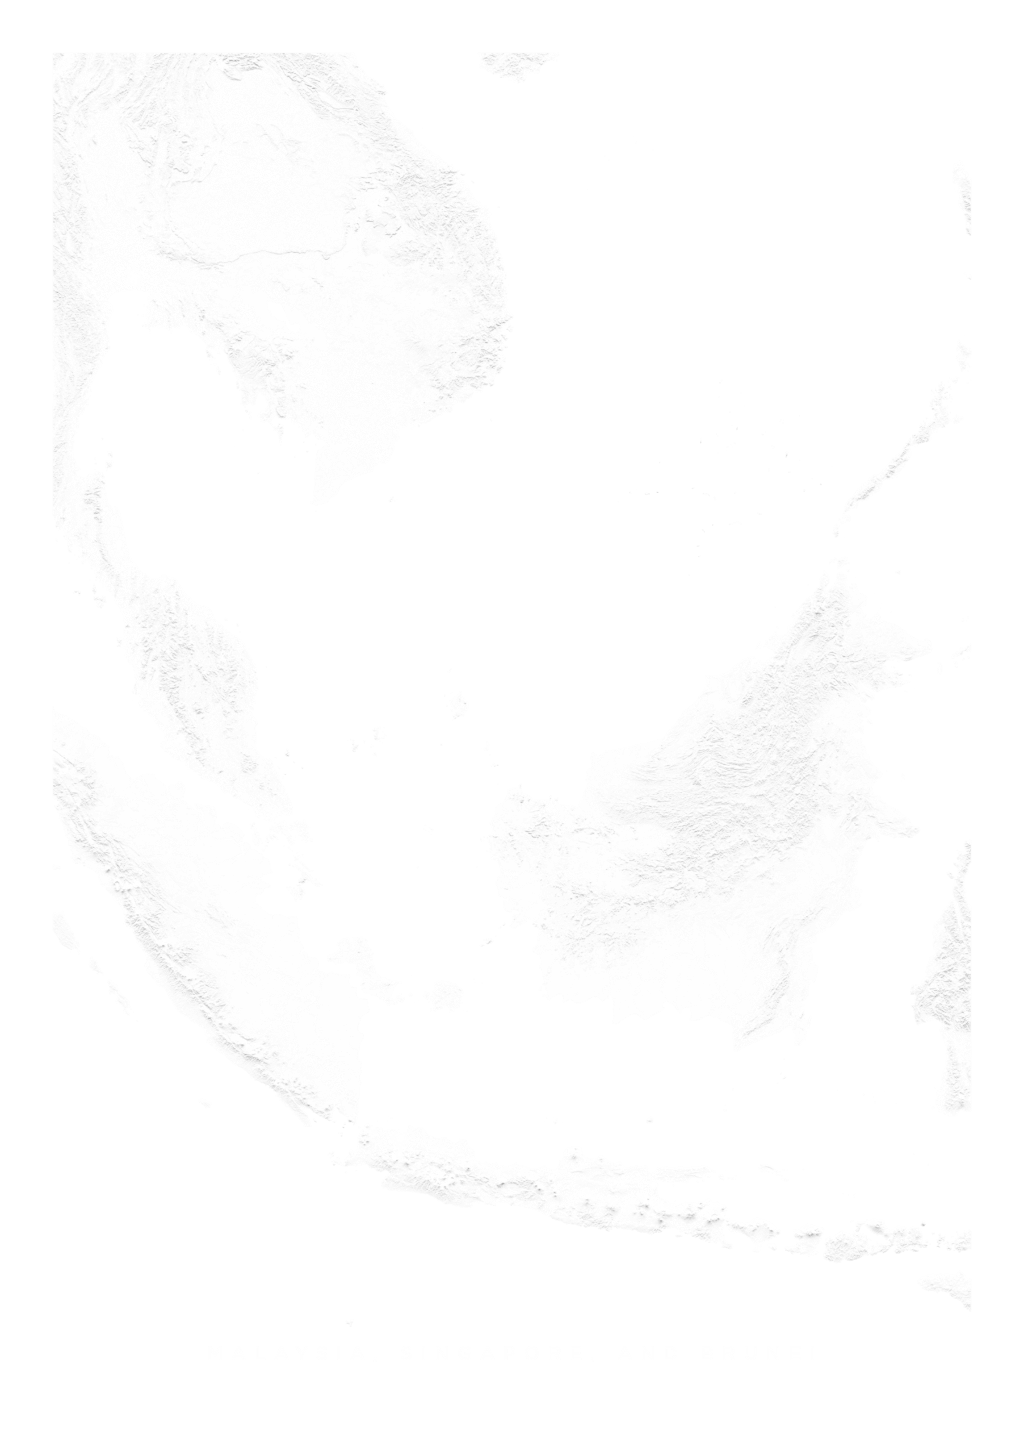 Malaysia, Singapore, And Brunei wall map